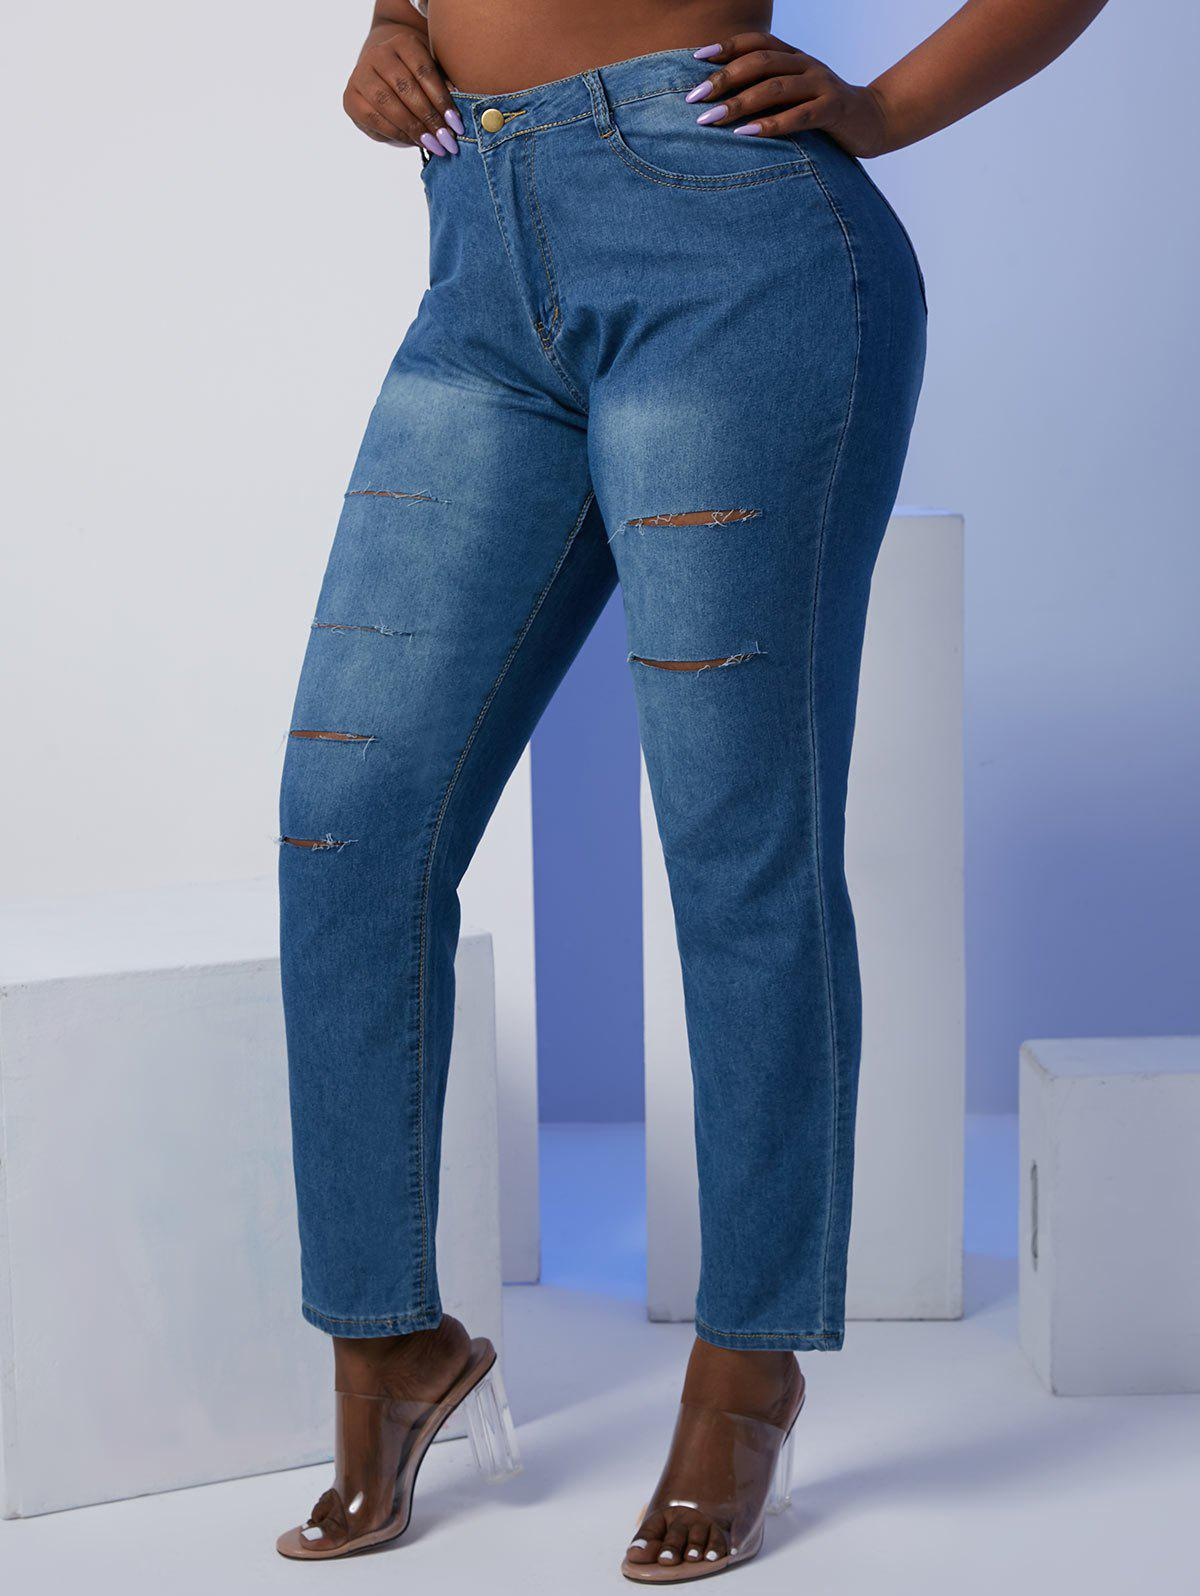 Ladder Ripped Mid Rise Plus Size Skinny Jeans - BLUE 5XL